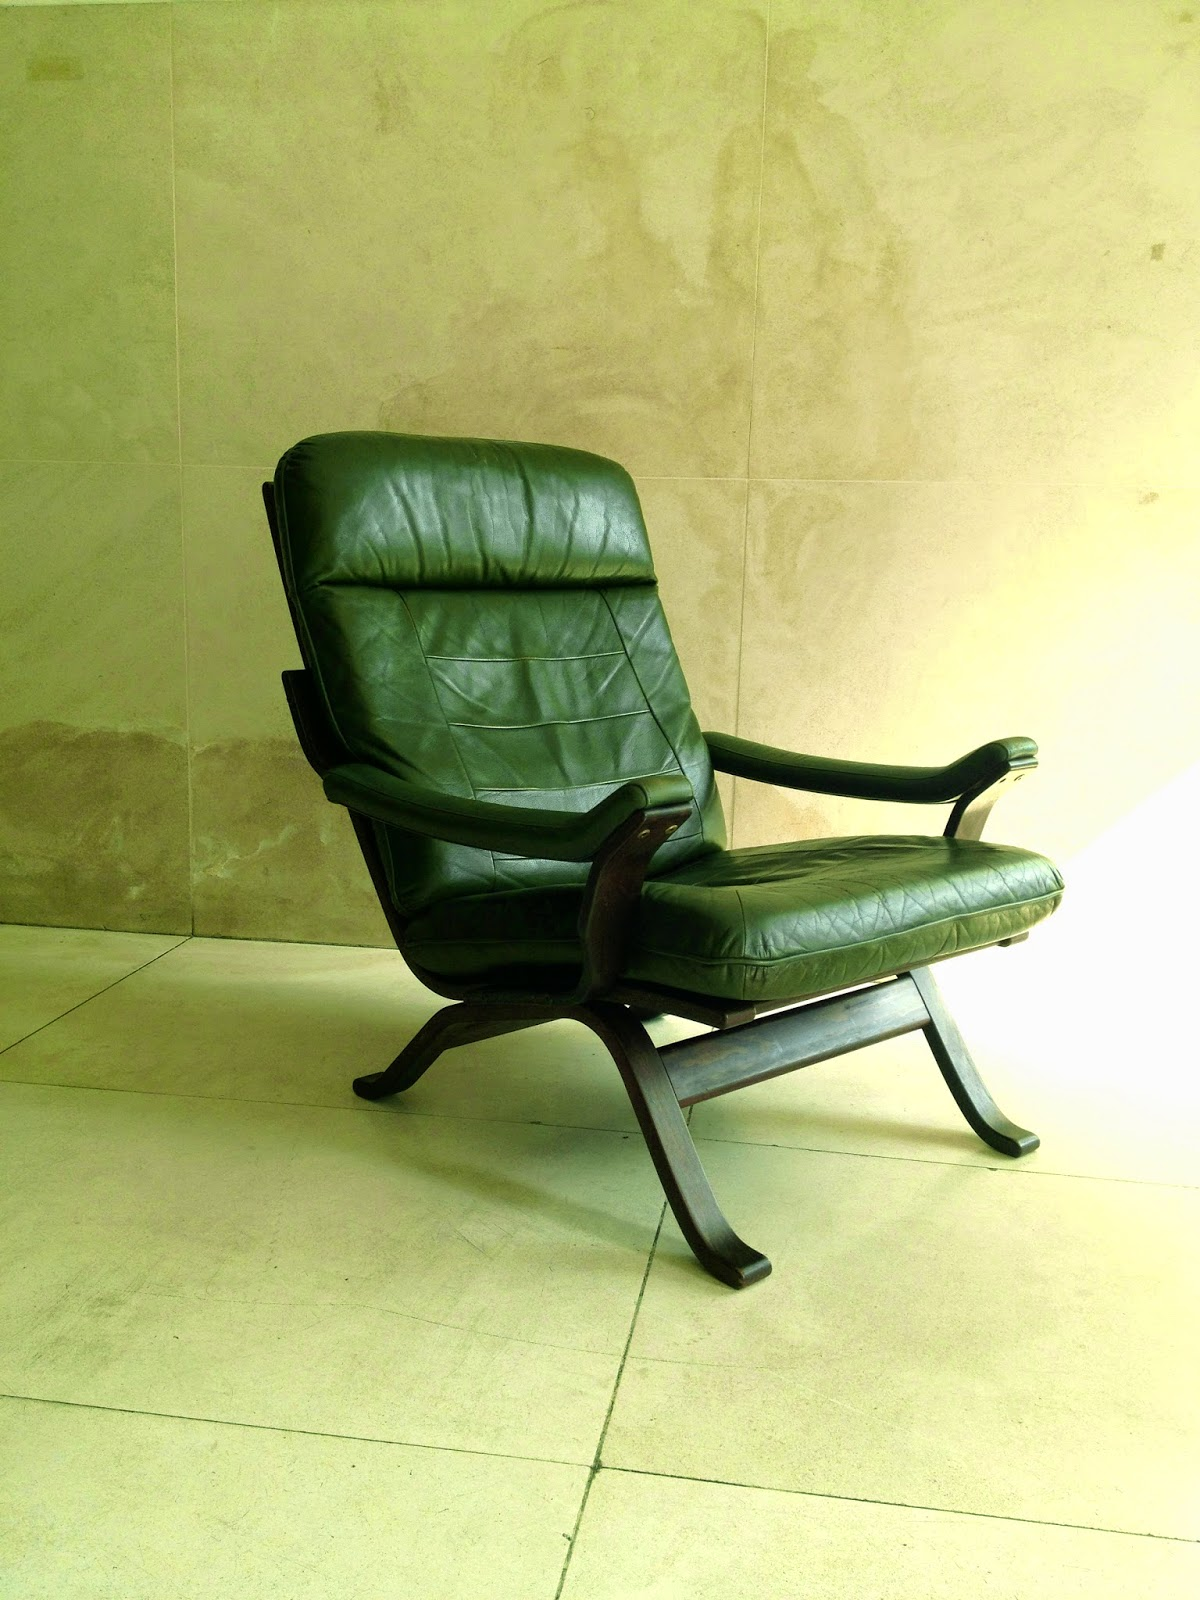 cadeirão, nórdico, vintage, pele, lounge chair, vintage lounge chair